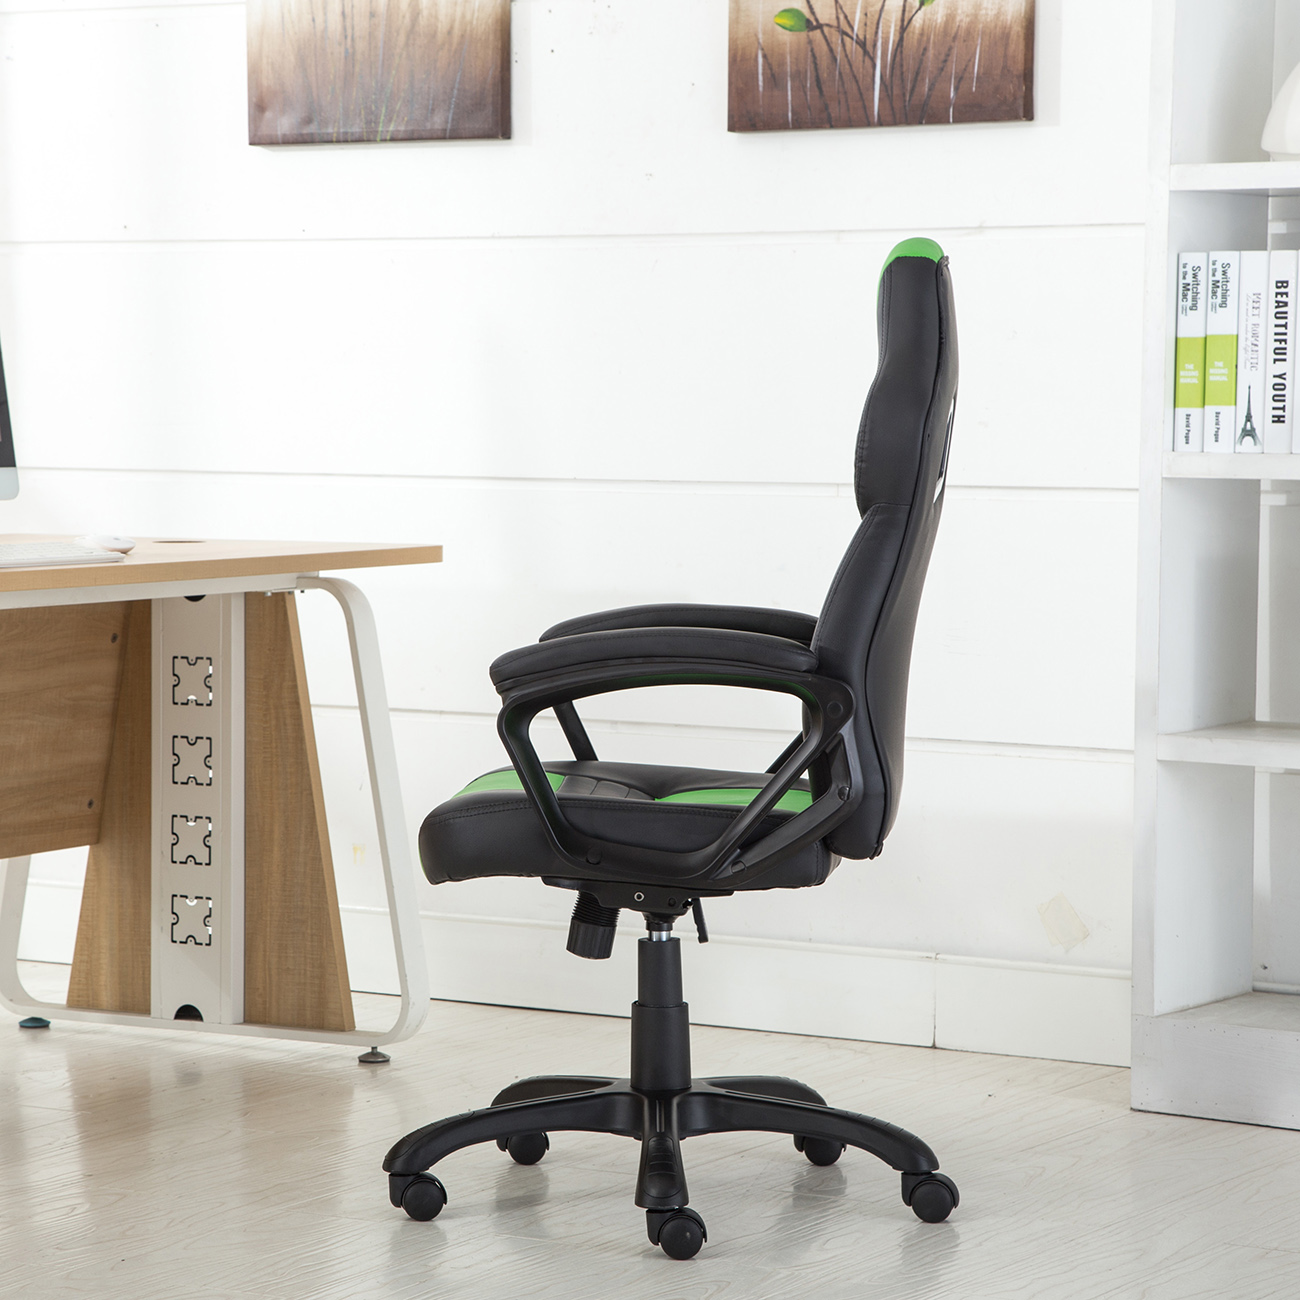 Green Computer Chair Office Chair Ergonomic Computer Pu Leather Desk Swivel